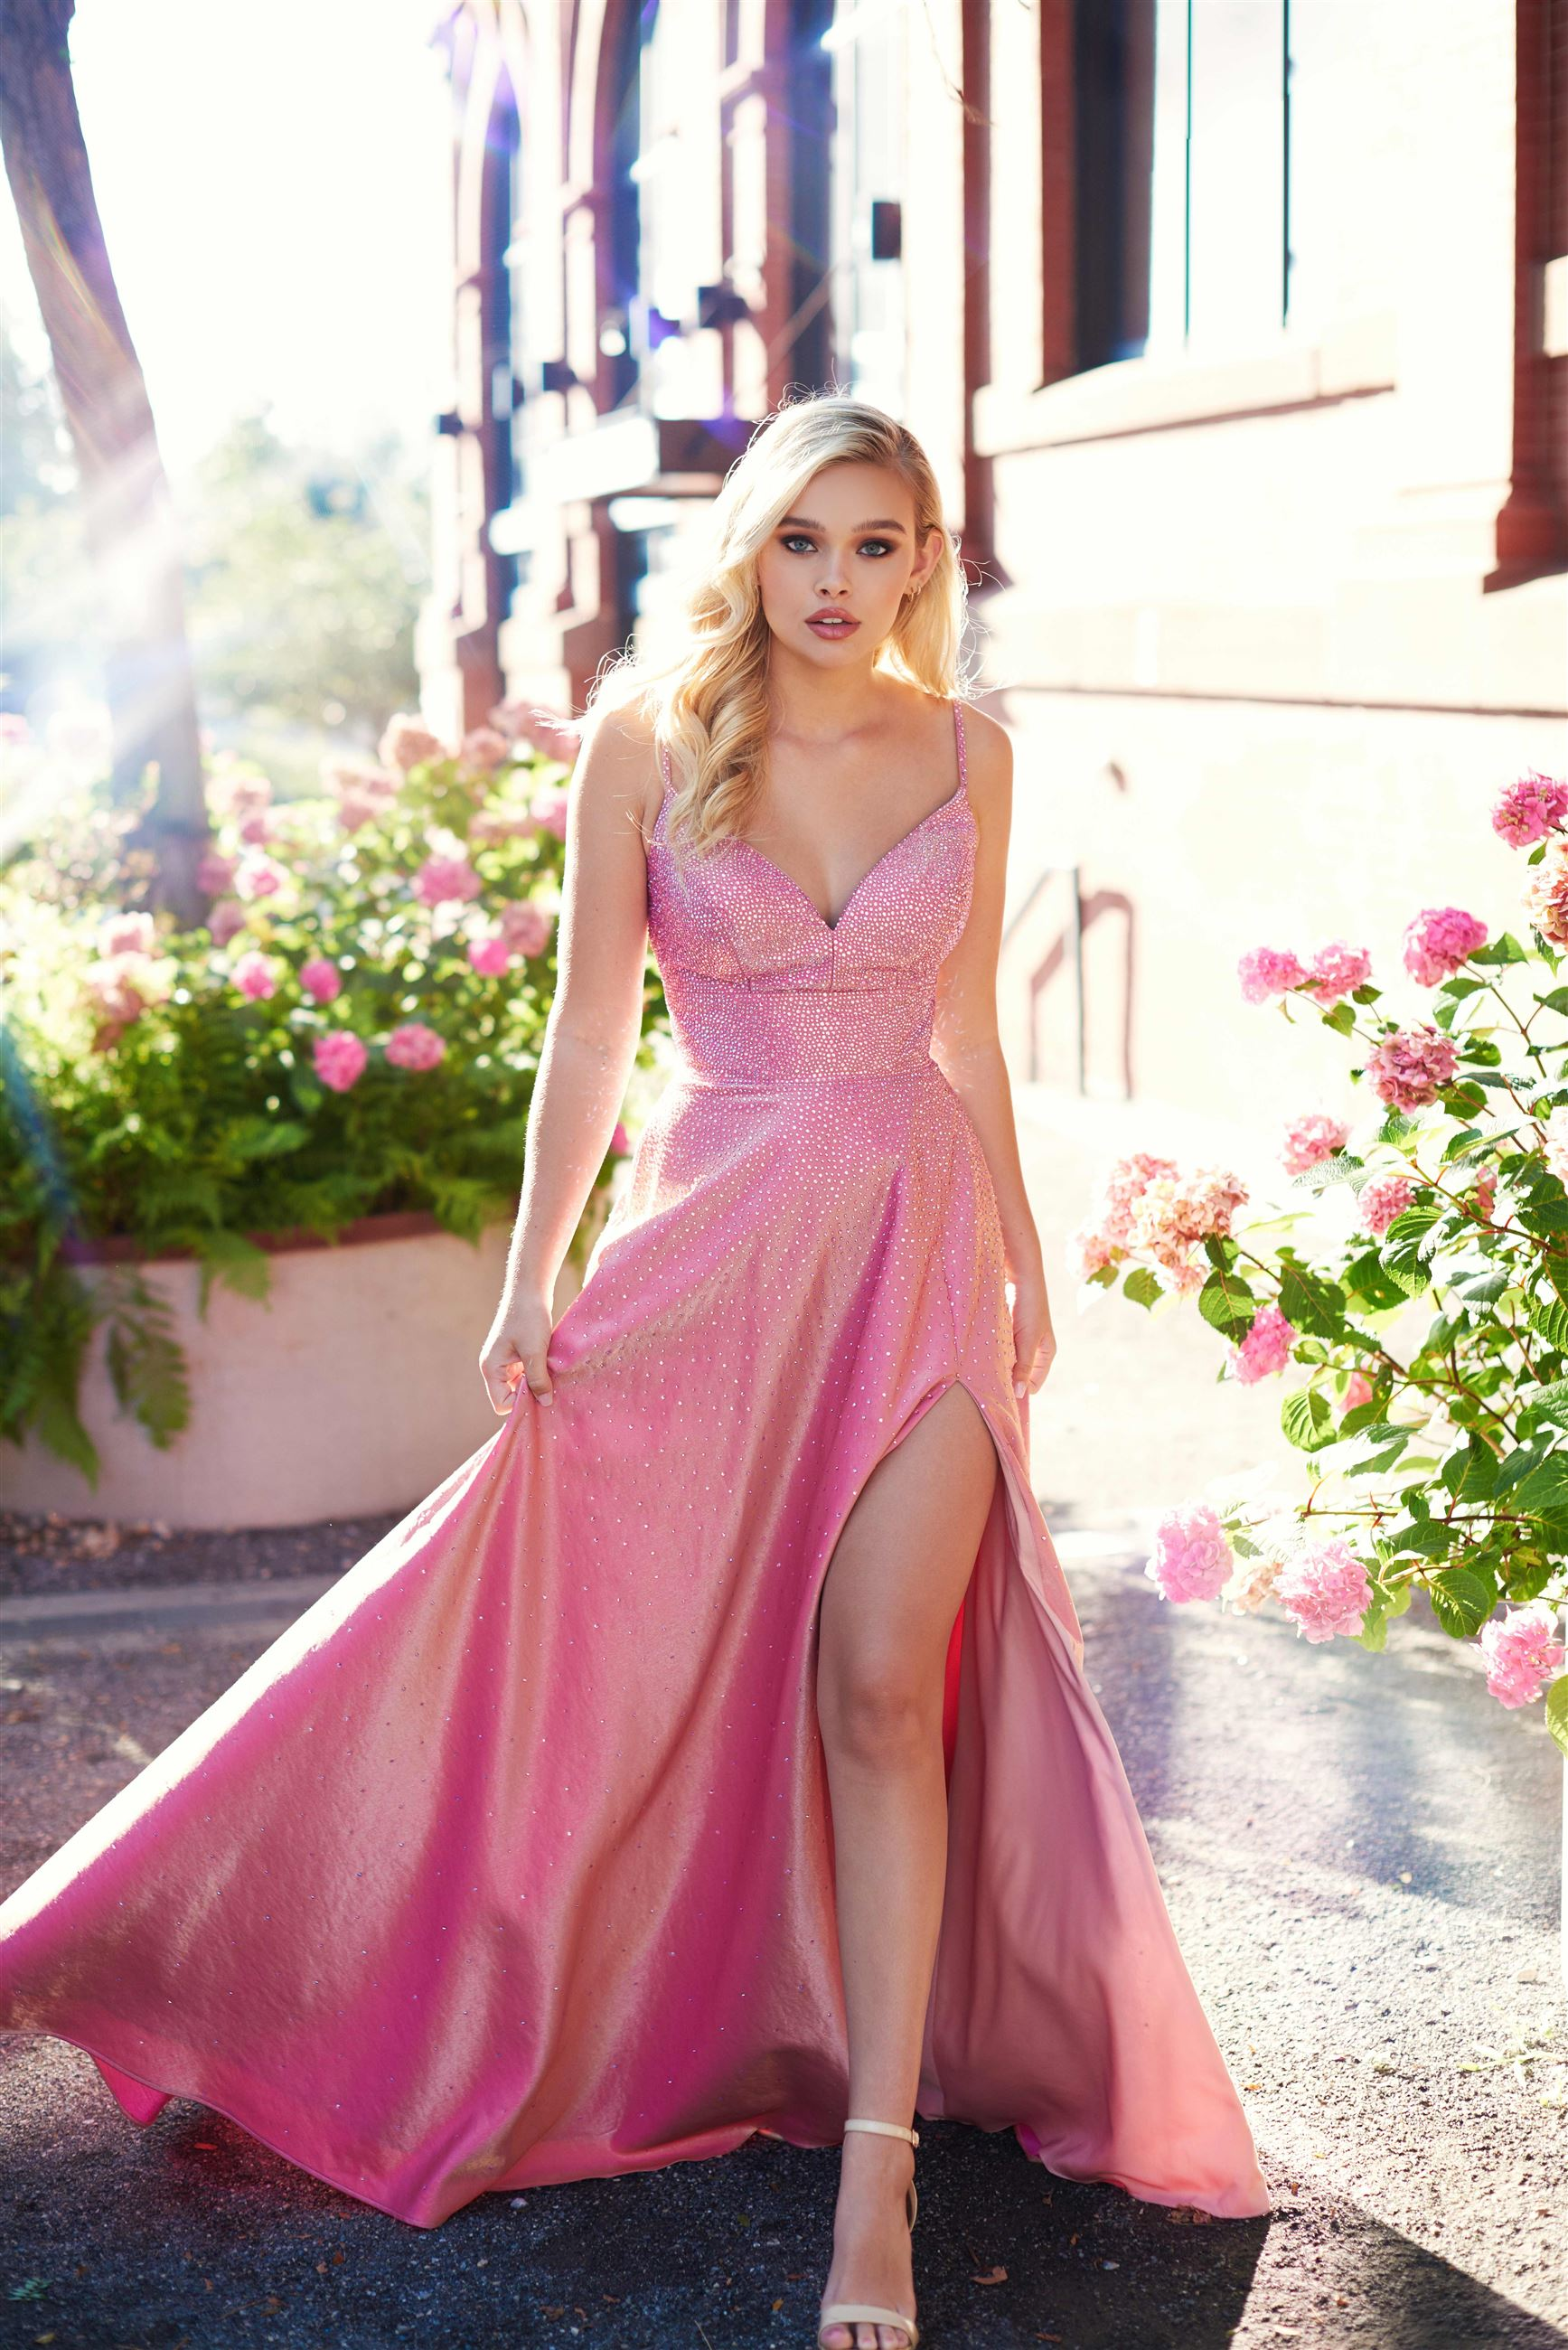 Blonde model in pink prom dress with thigh high slit by Ellie Wilde